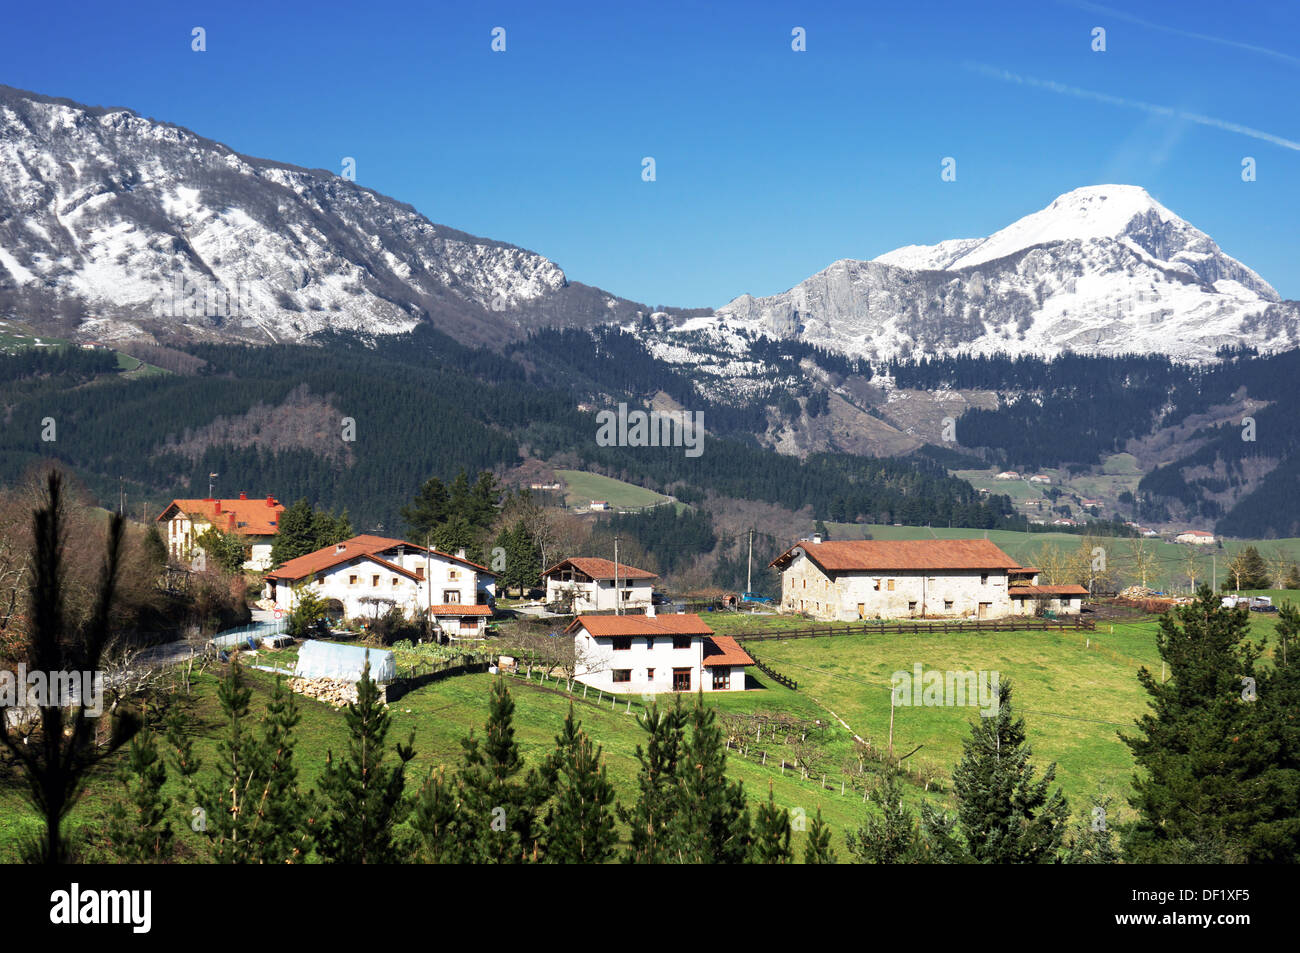 village in Aramaio valley, surrounding by snowy mountains, in Basque Country. - Stock Image